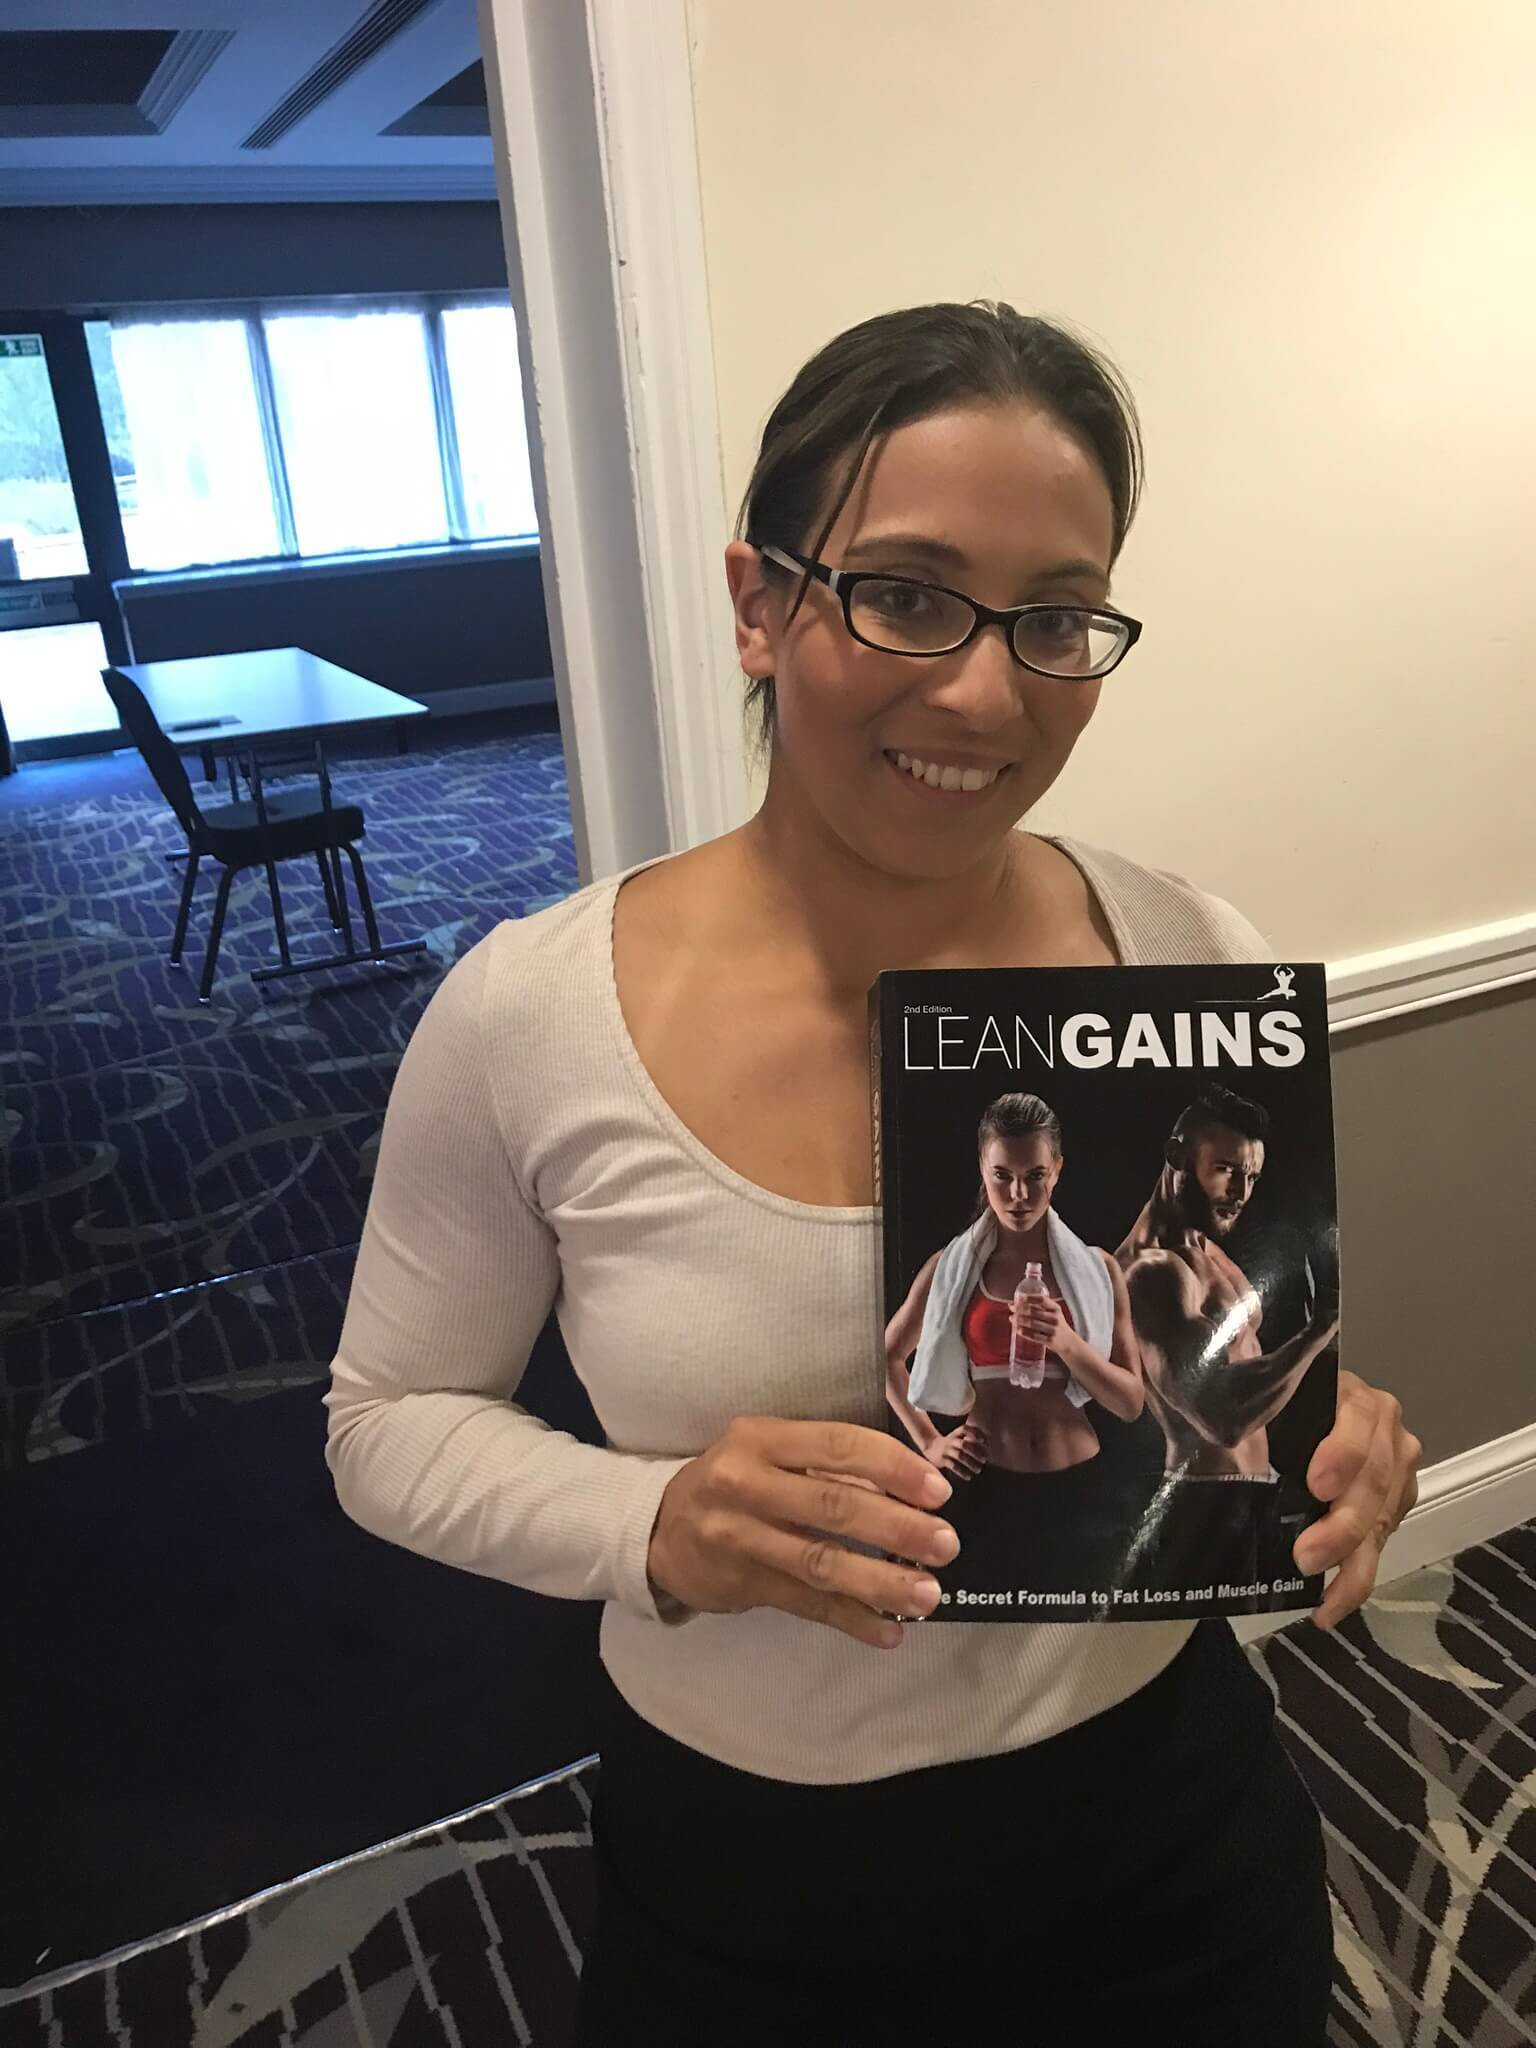 indian lady holding lean gains book